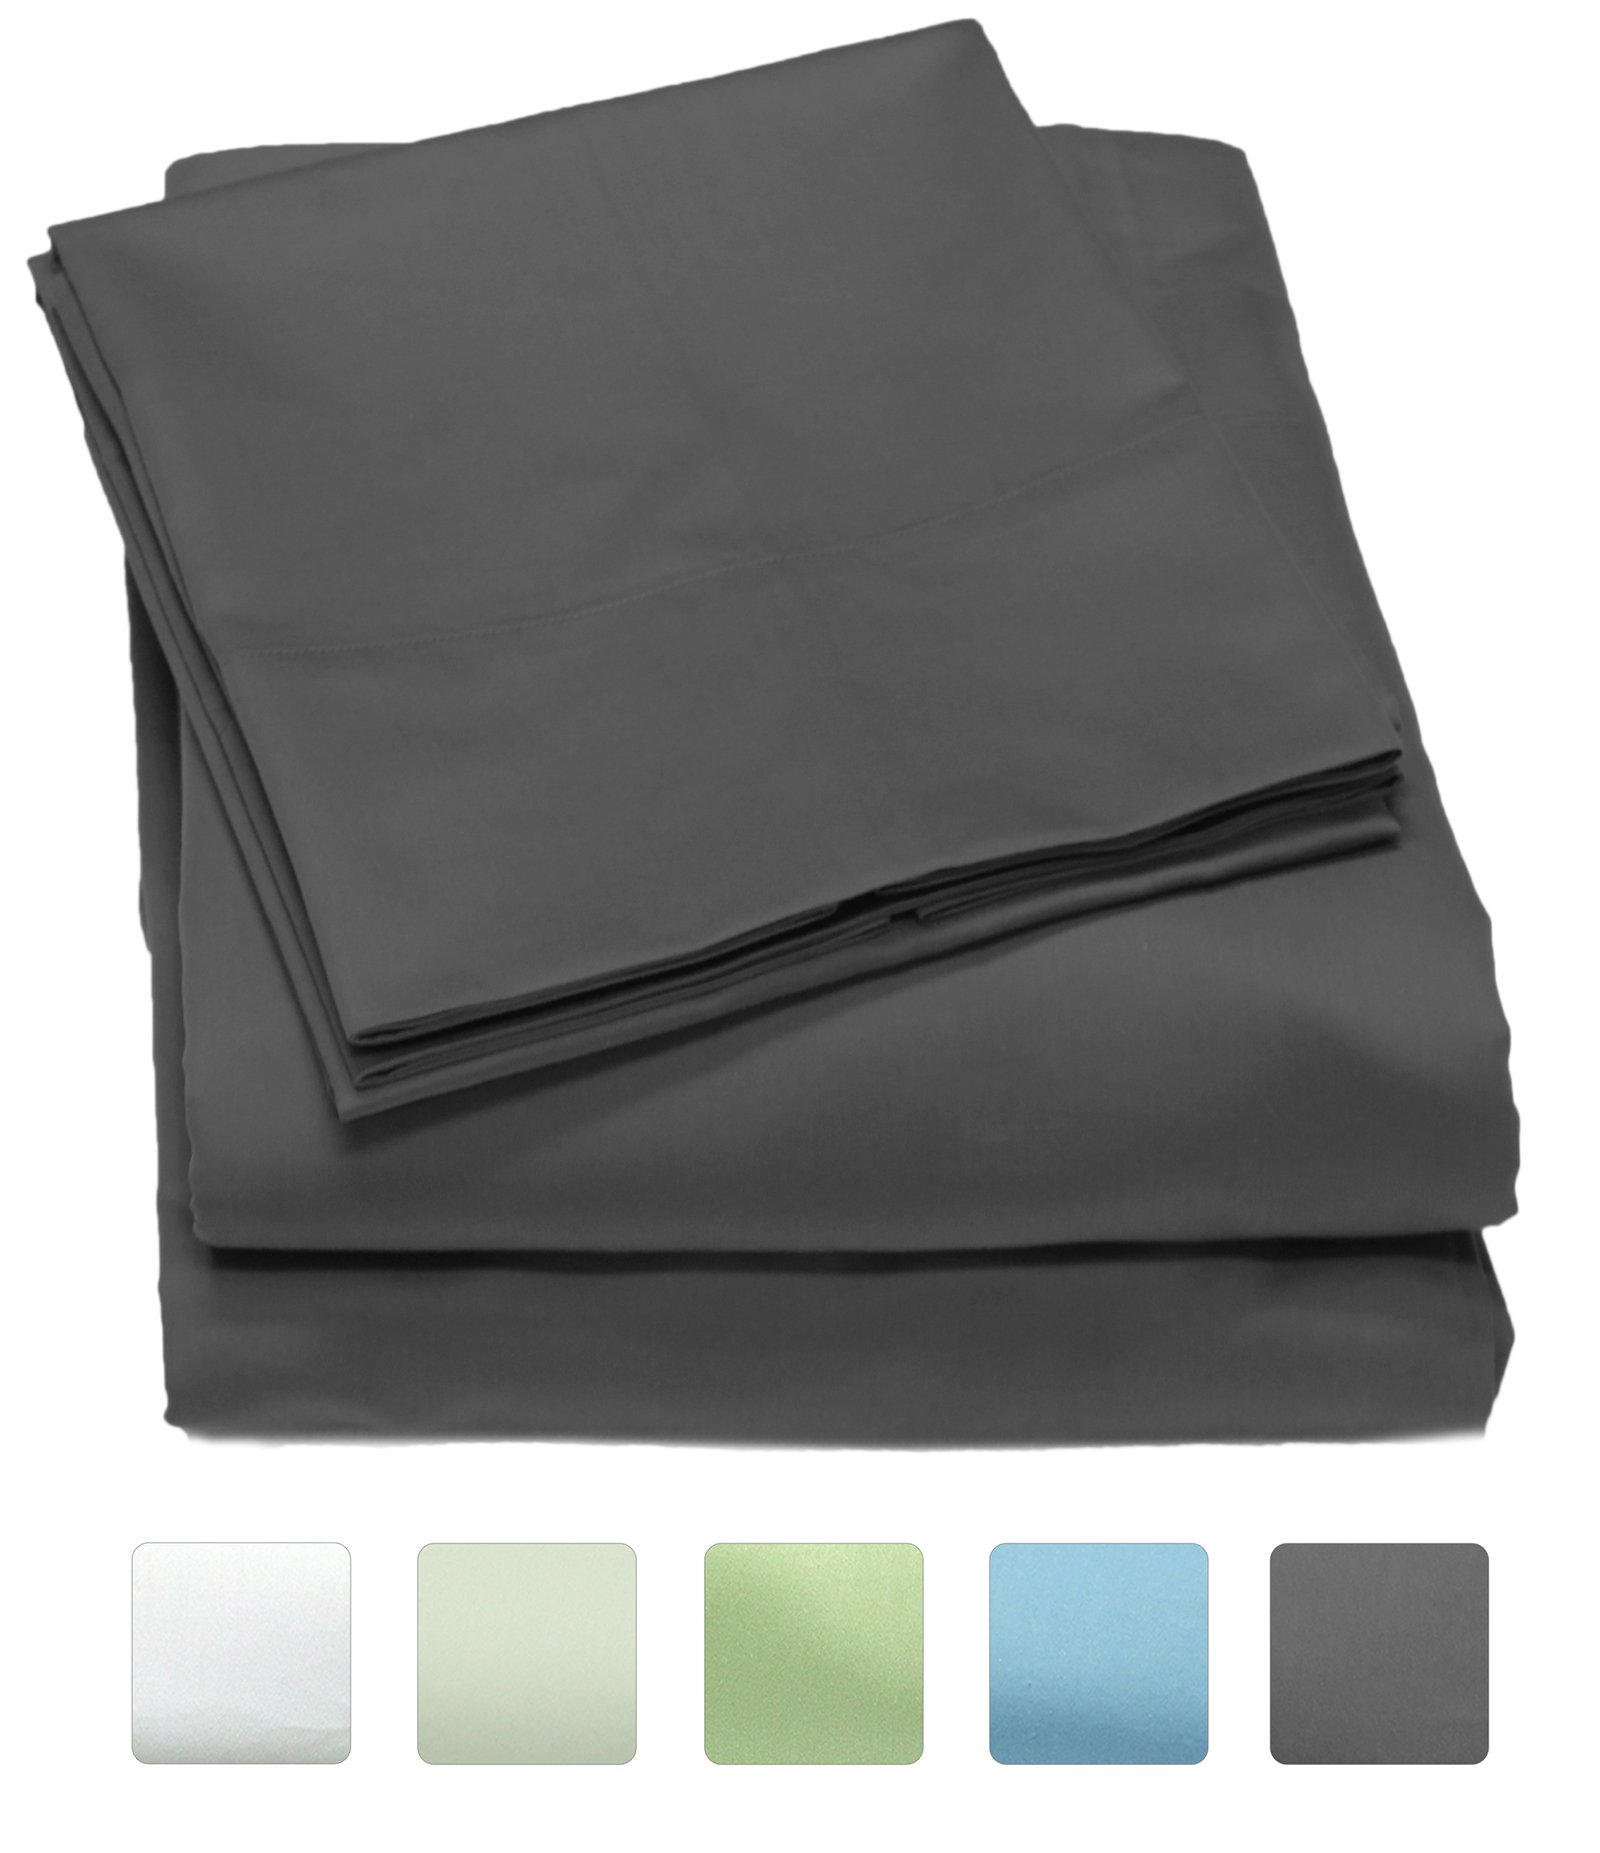 Callista 300 Thread Count 100% Cotton Sheet Set, Soft Sateen Weave,Twin Sheets, Deep Pockets,Hotel Collection,Luxury Bedding-Bestseller- Super Sale 100% Cotton, Twin Grey by Fine Linen